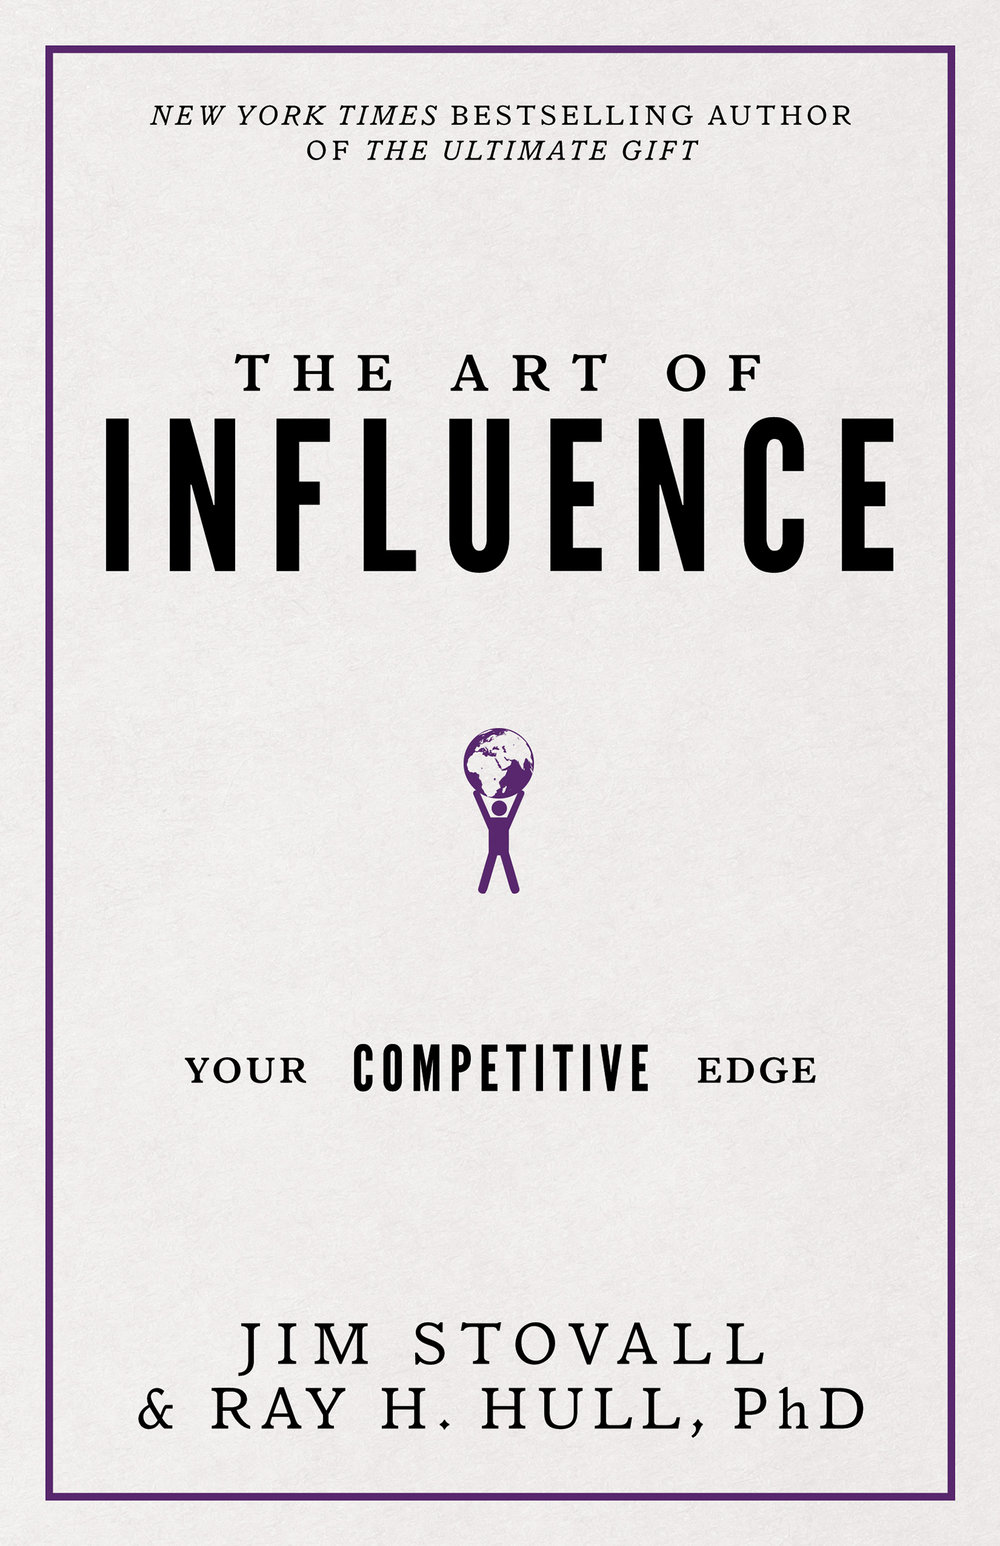 The Art of Influence - By Jim Stovall & Ray H. Hull, PhD